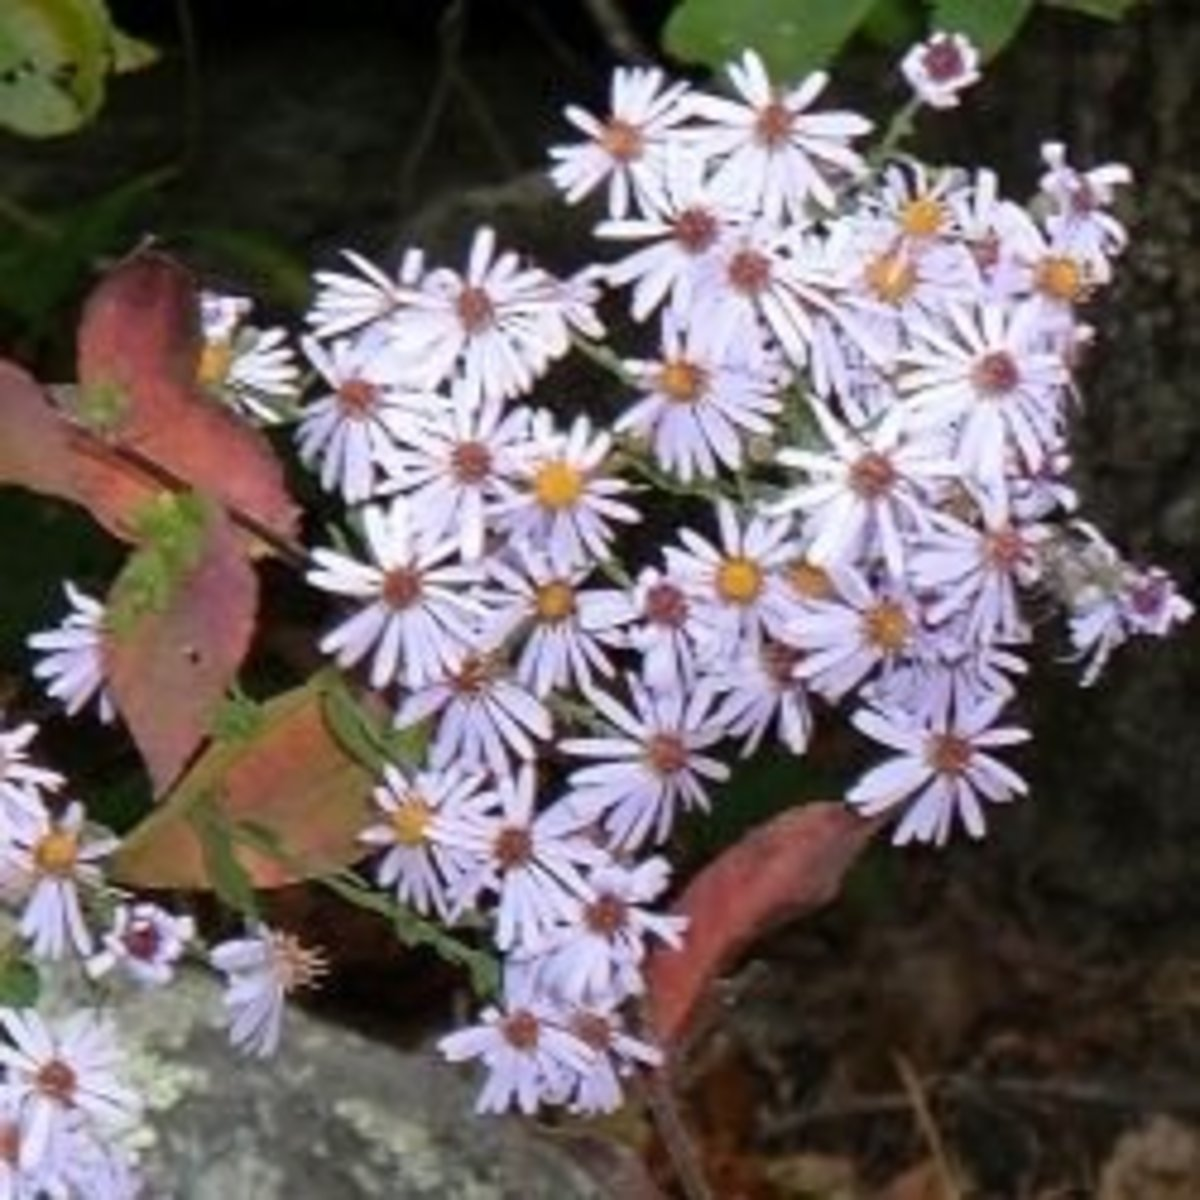 Native White Wood Aster growing in our woodland garden